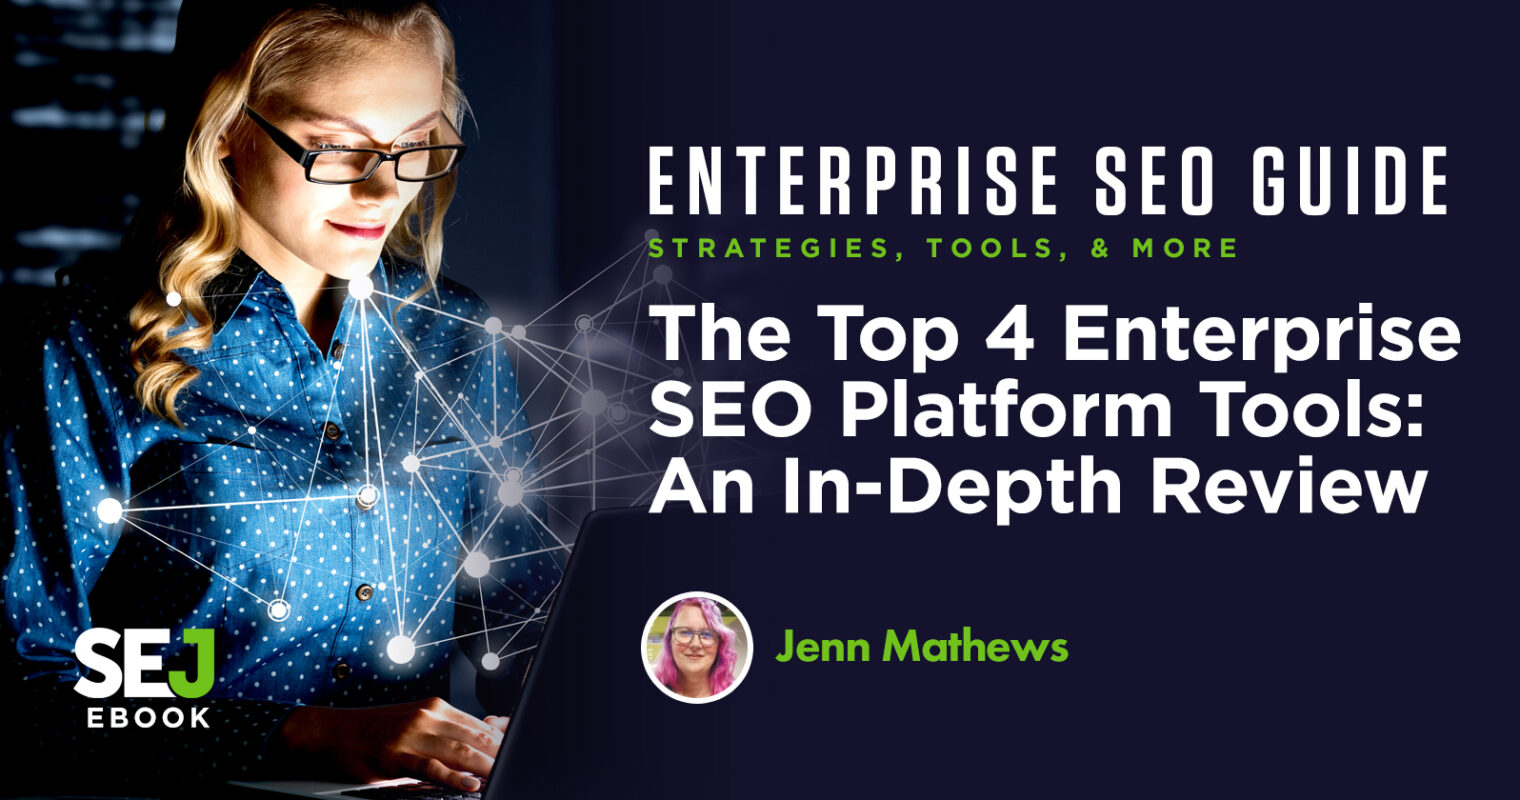 The Top 4 Enterprise SEO Platform Tools: An In-Depth Review